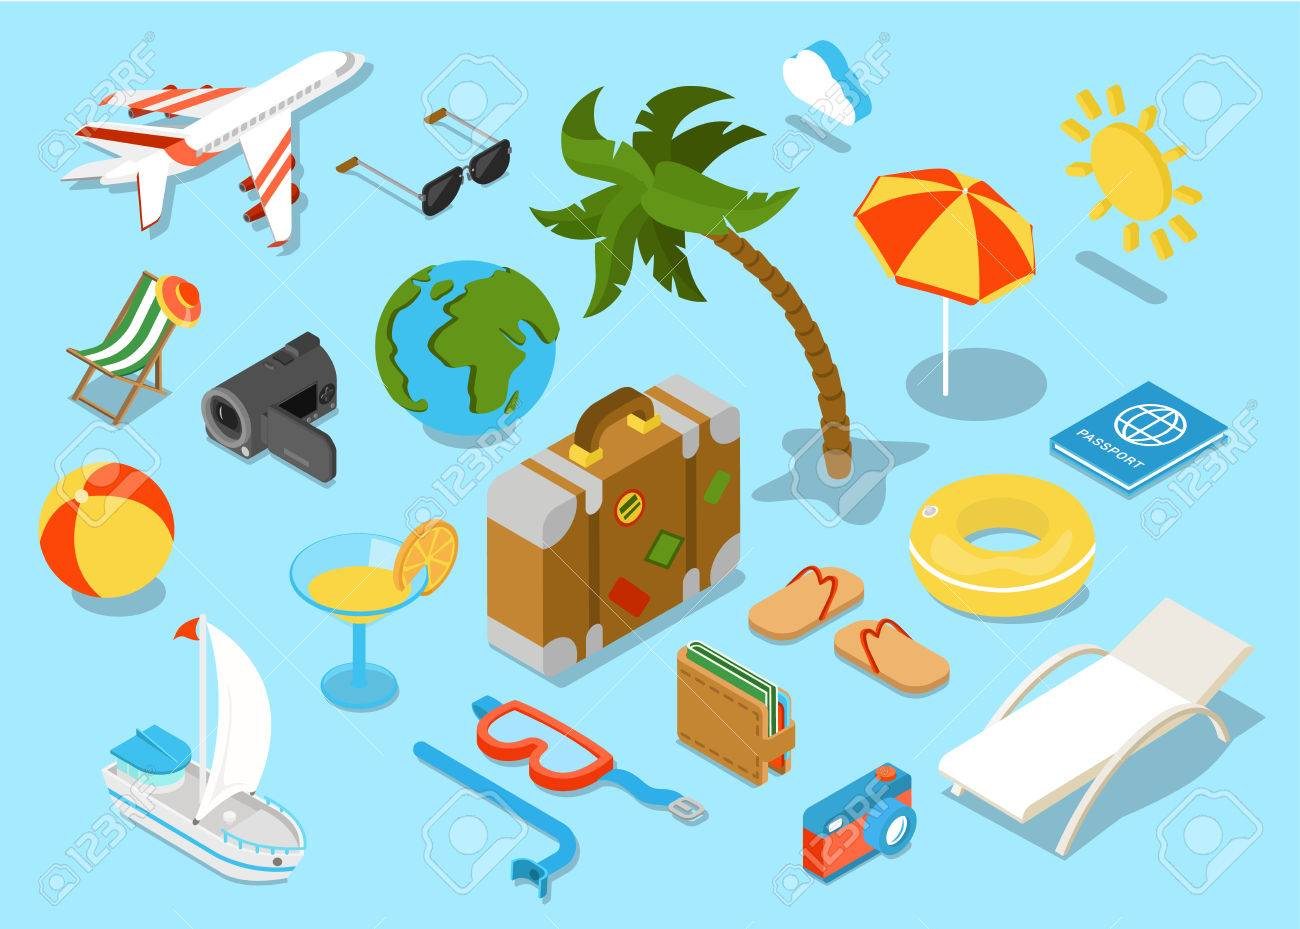 Flat 3d isomectric travel objects icon set